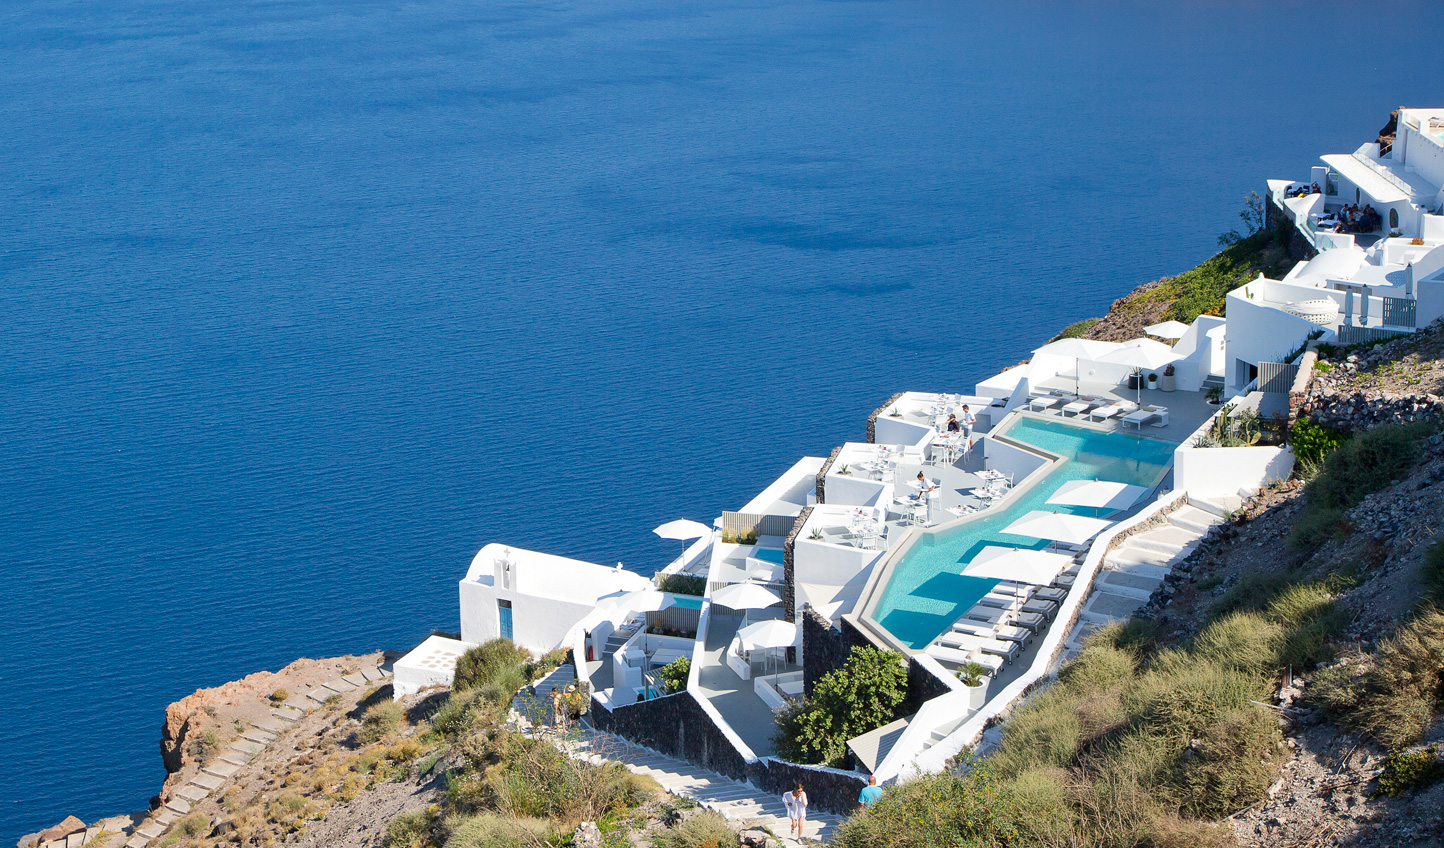 Island bliss at Grace Hotel in Santorini